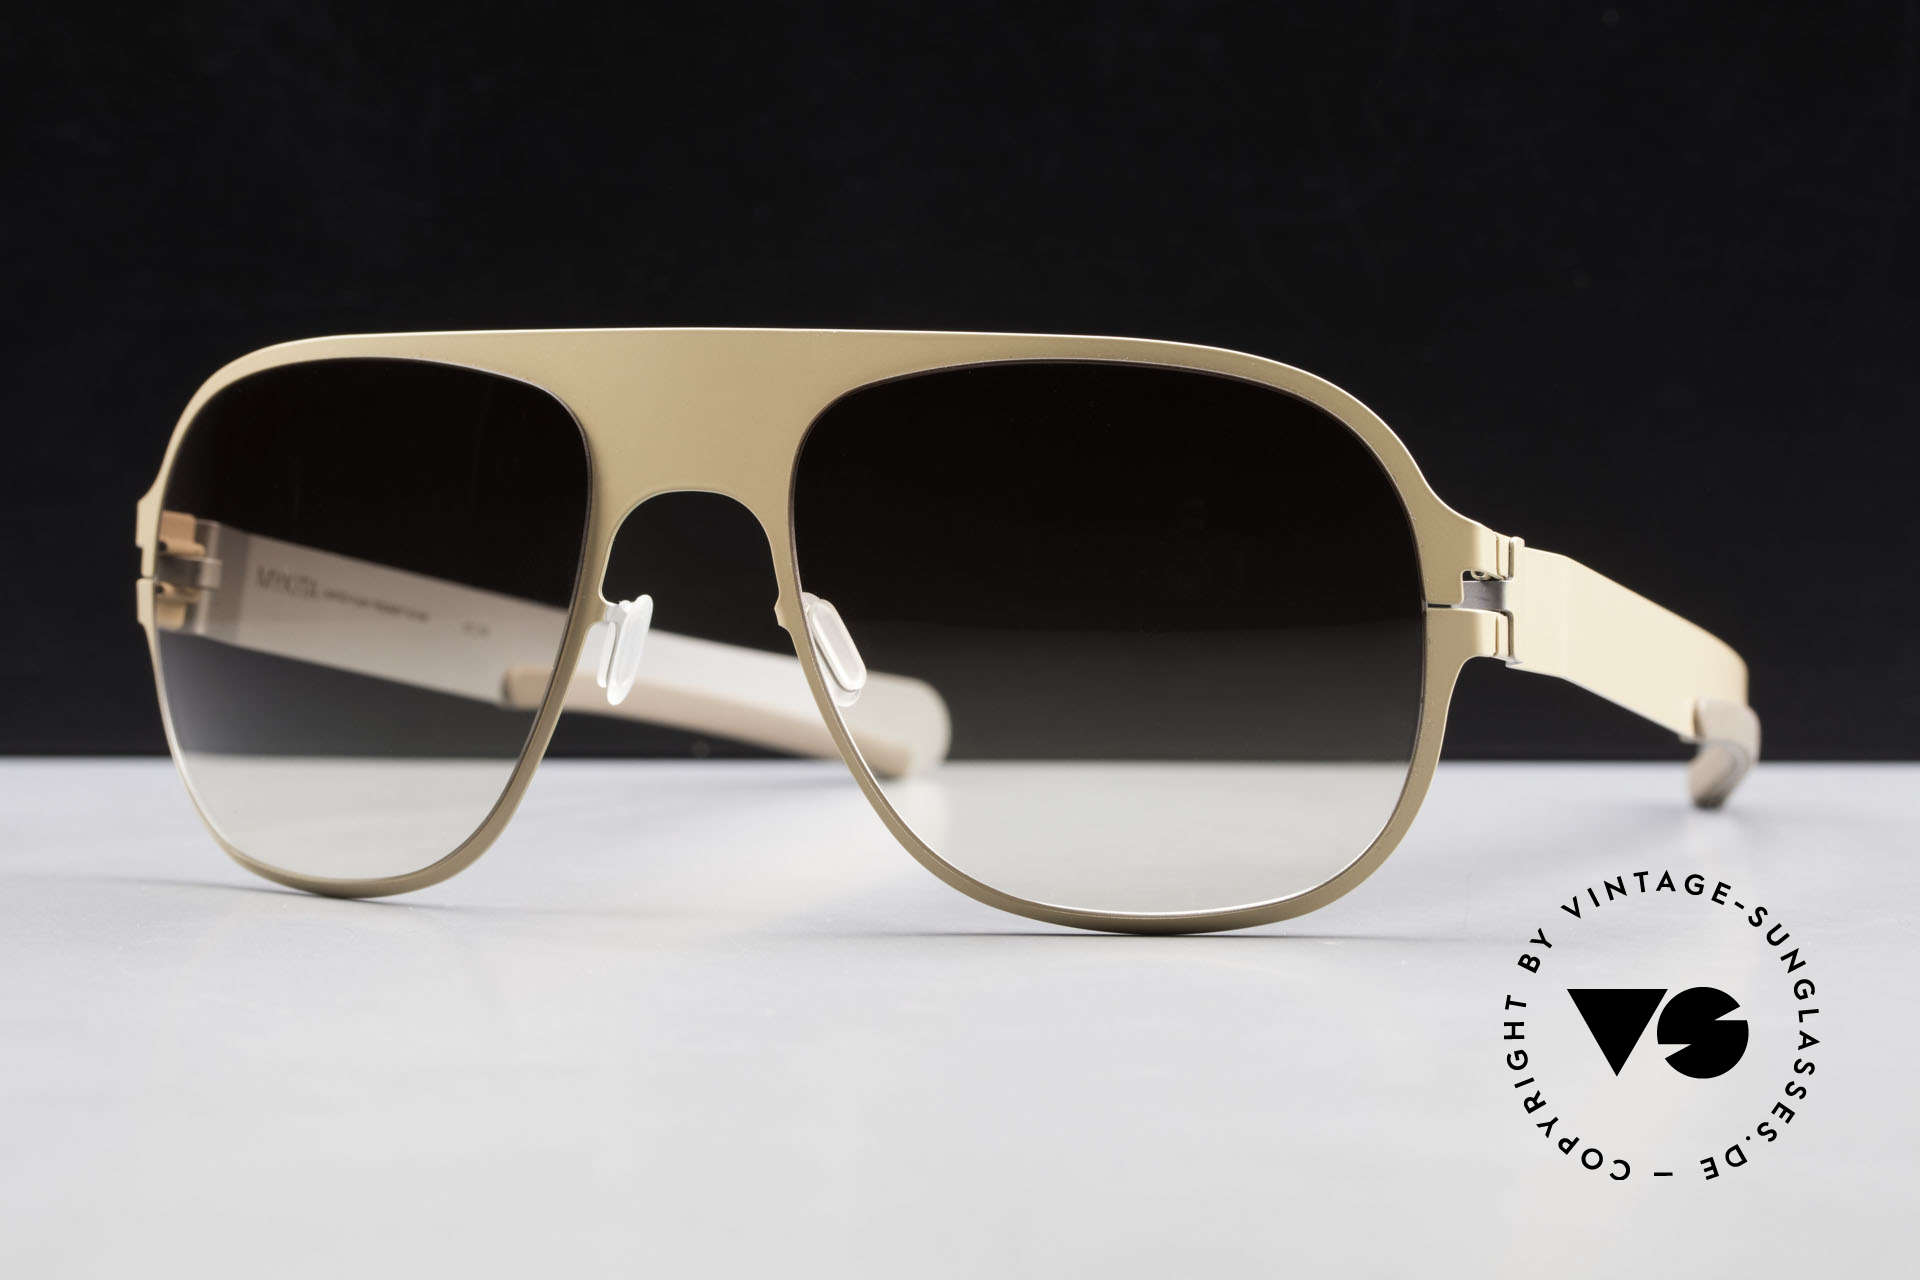 Mykita Rodney Designer Sunglasses Limited, Limited Flash Rodney Nude SS10M, brown gradient, 57/19, Made for Men